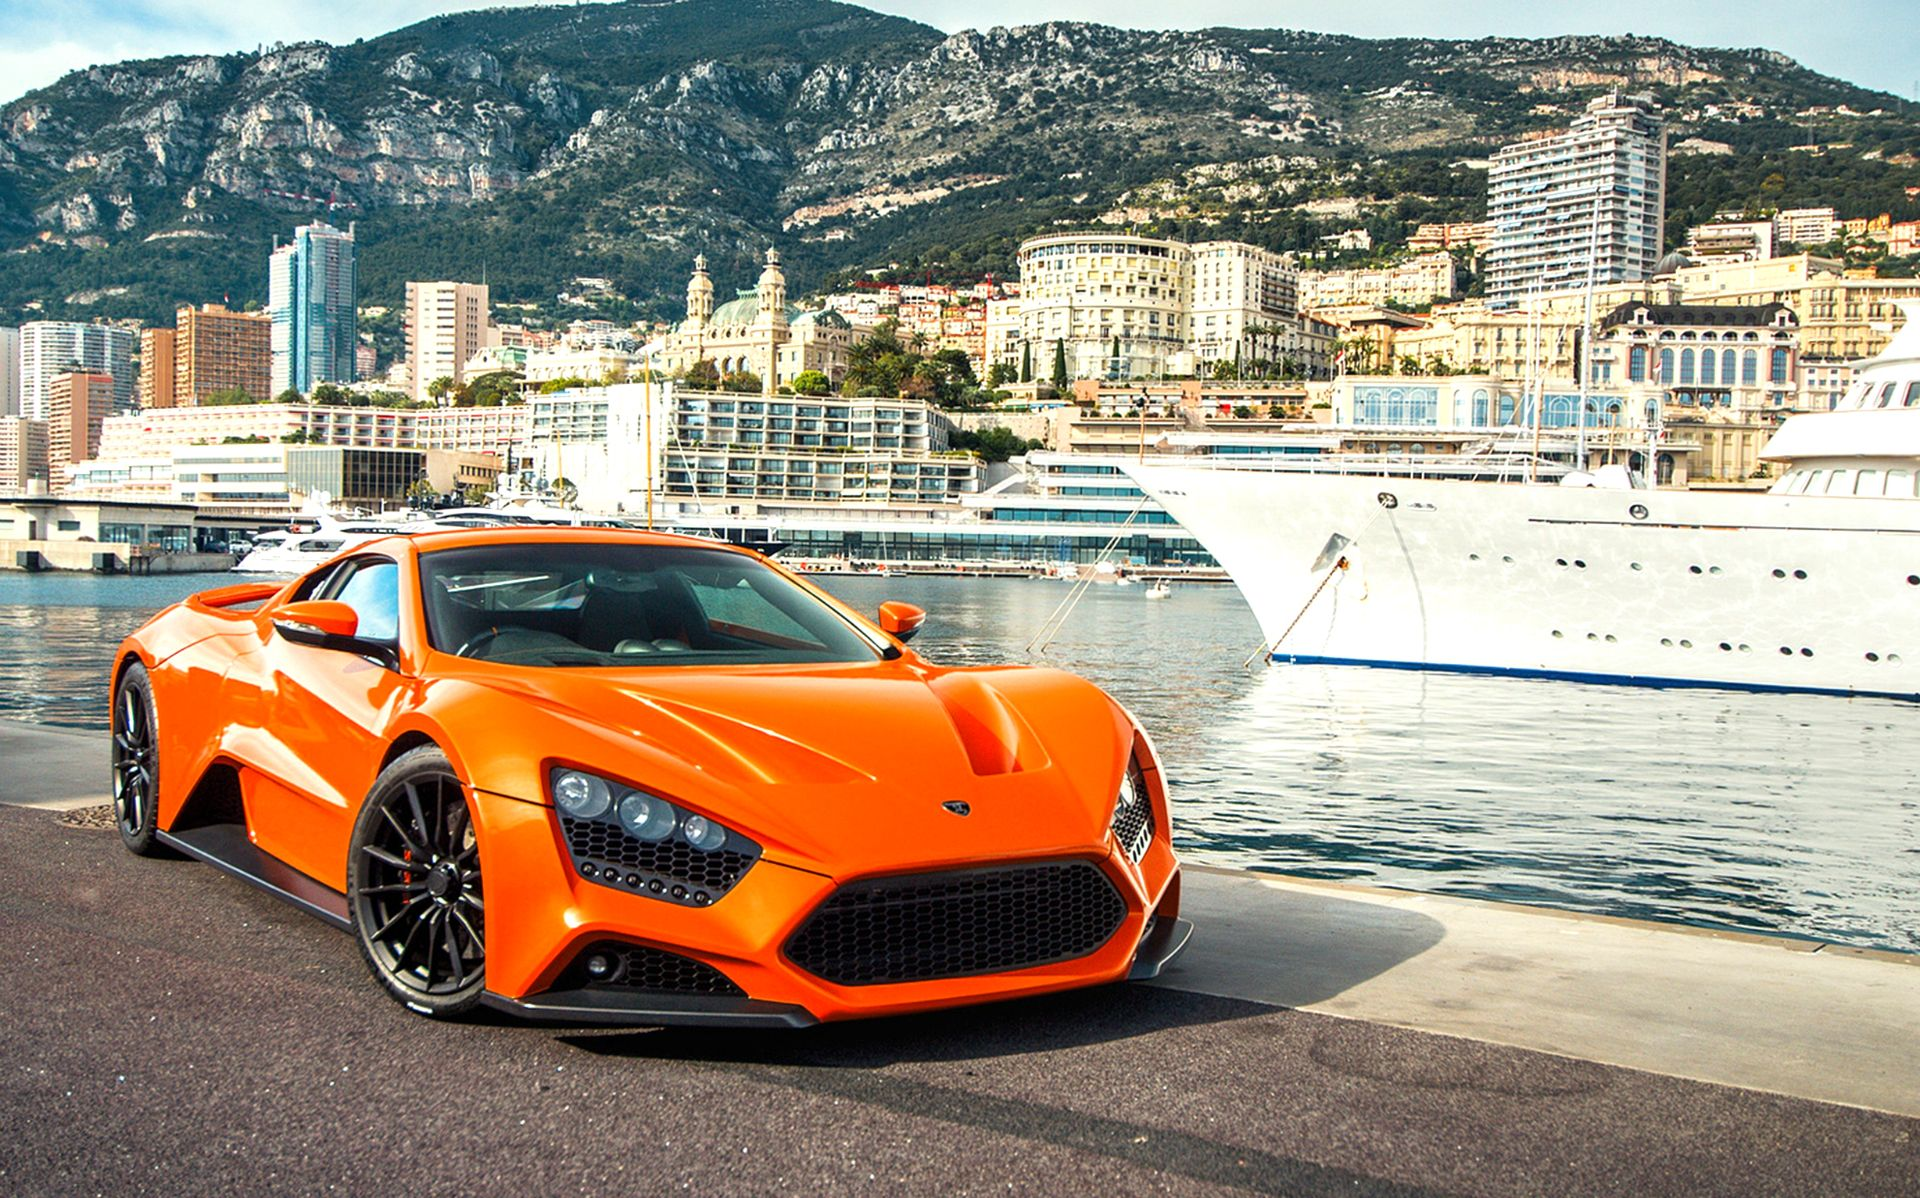 Download Cars Wallpapers Hd Free Download Hd Widescreen Wallpaper Or High Definition Widescreen Wallpapers From T Car Wallpapers Zenvo St1 Widescreen Wallpaper